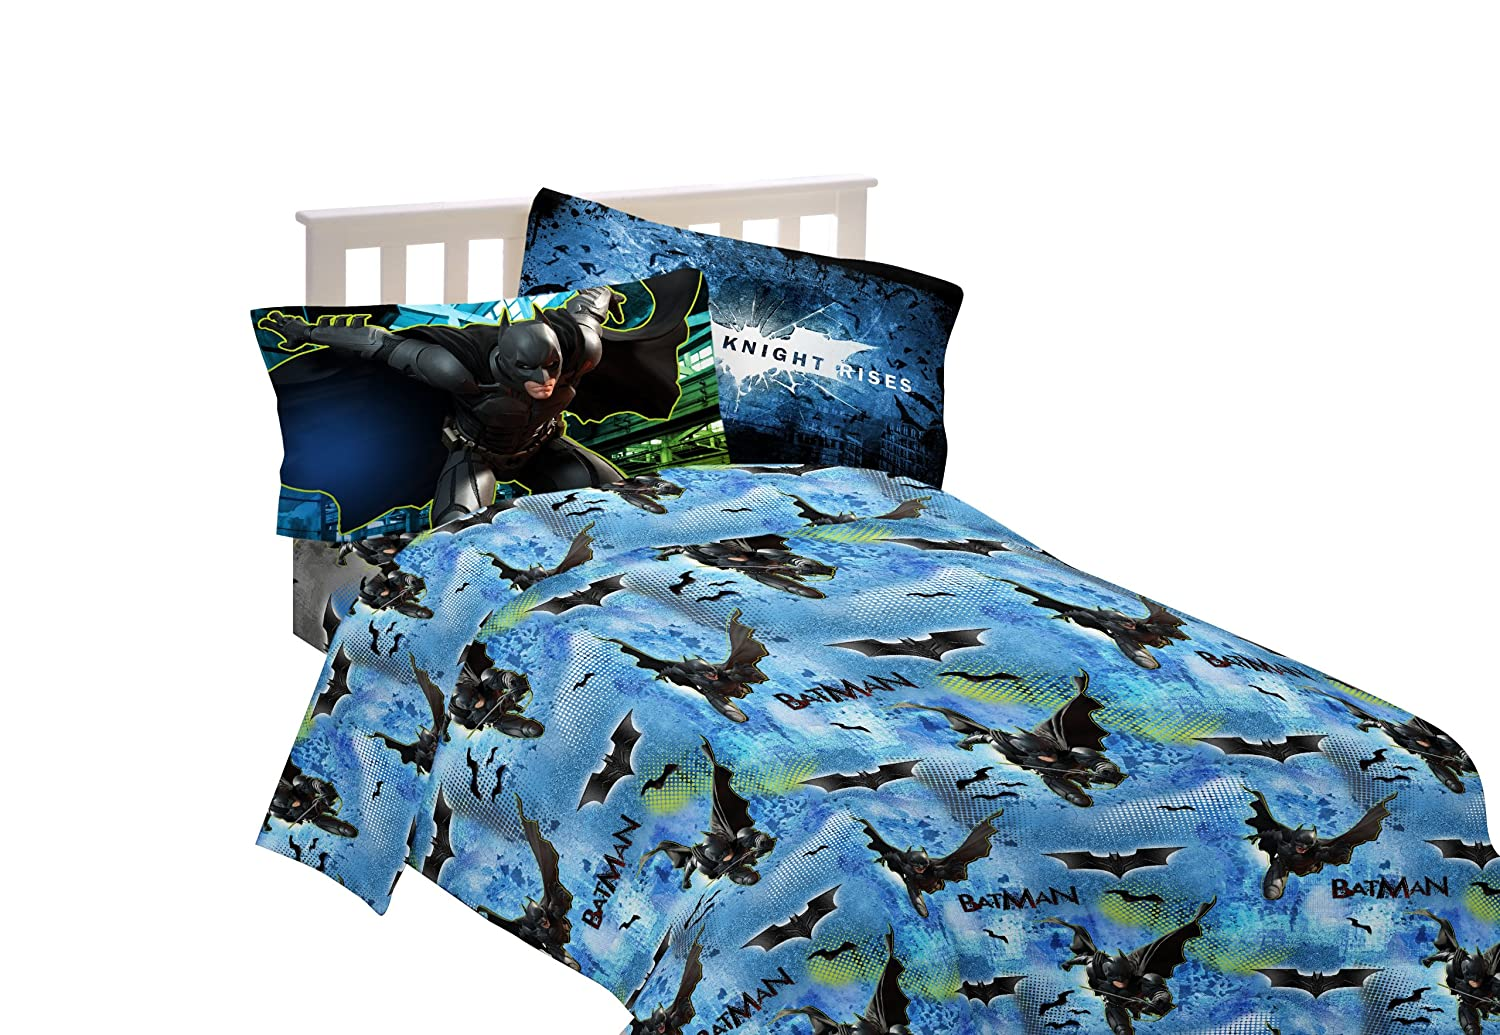 How To Design A Batman Themed Bedroom